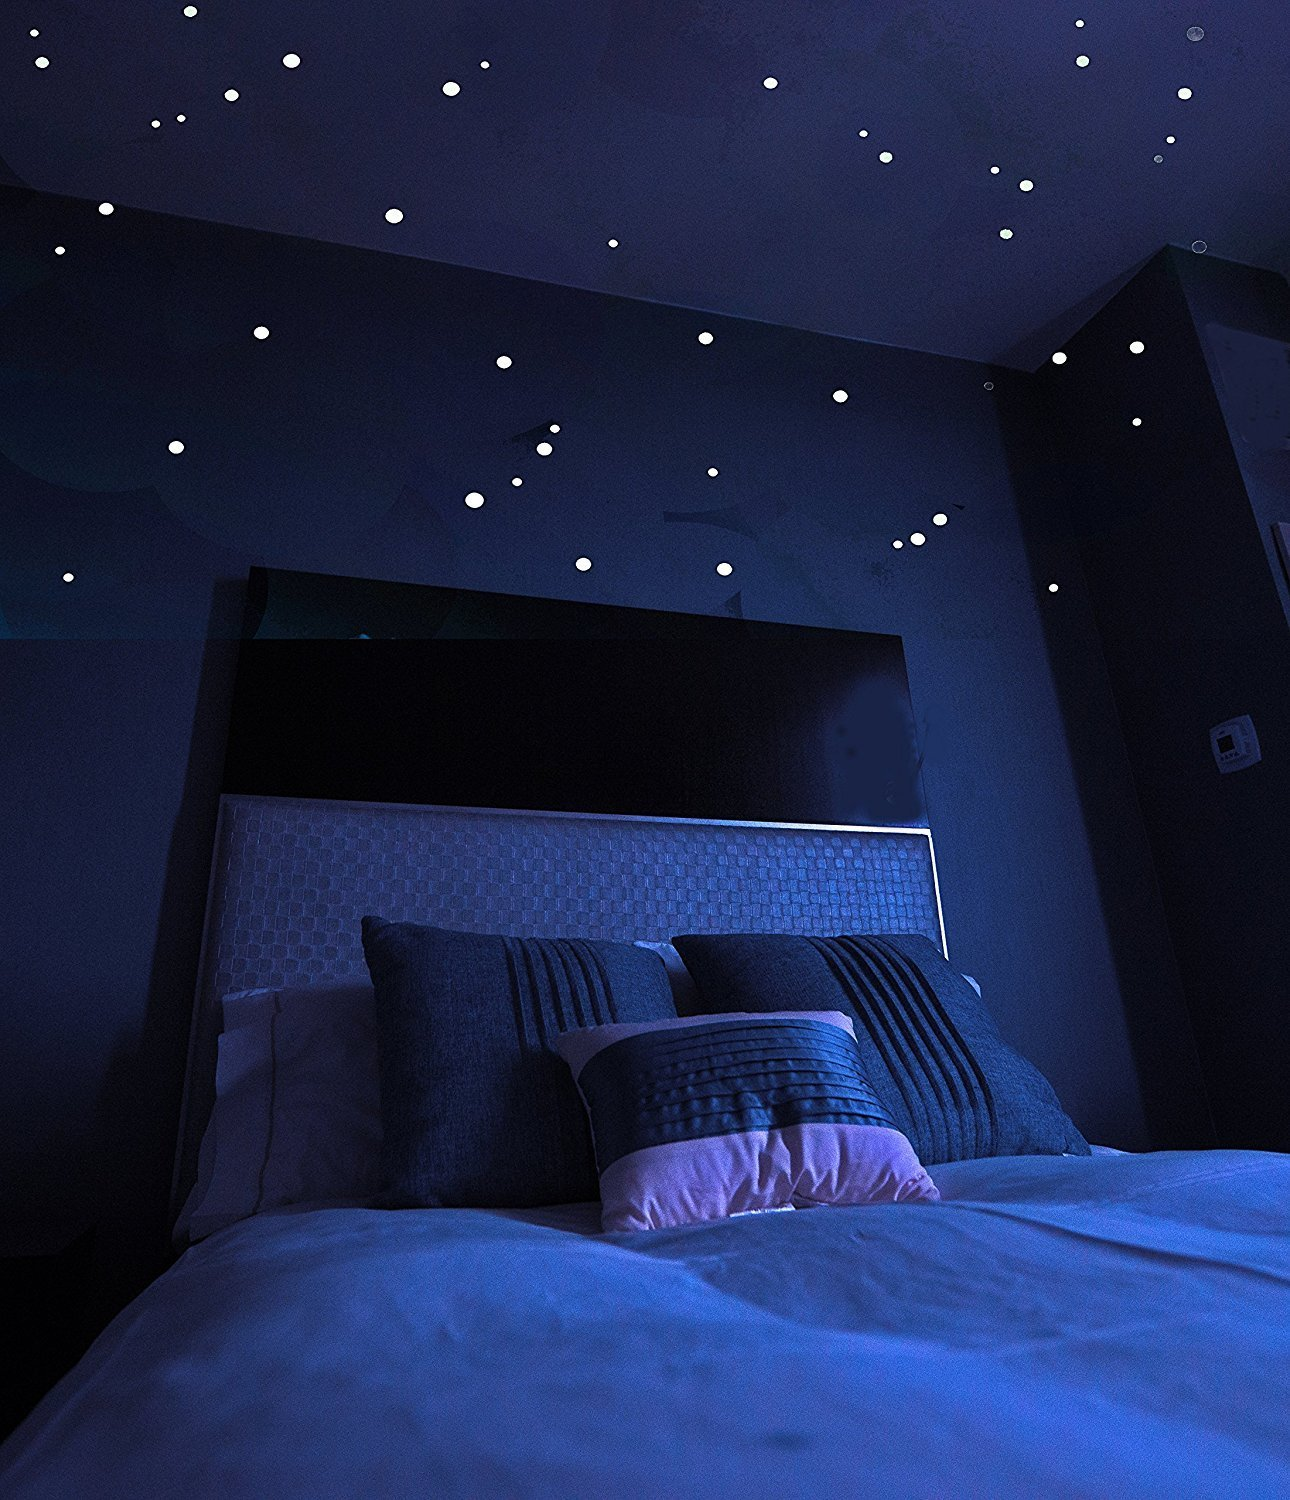 Star Vistas Glow in The Dark Star Stickers with Bonus Constellation Map, Long Lasting Self-Adhesive Dots Provide Realistic Starry Sky View on Ceiling or Wall for Any Kid's or Adult Room, 528 Piece Kensington Street Glow in the dark stars